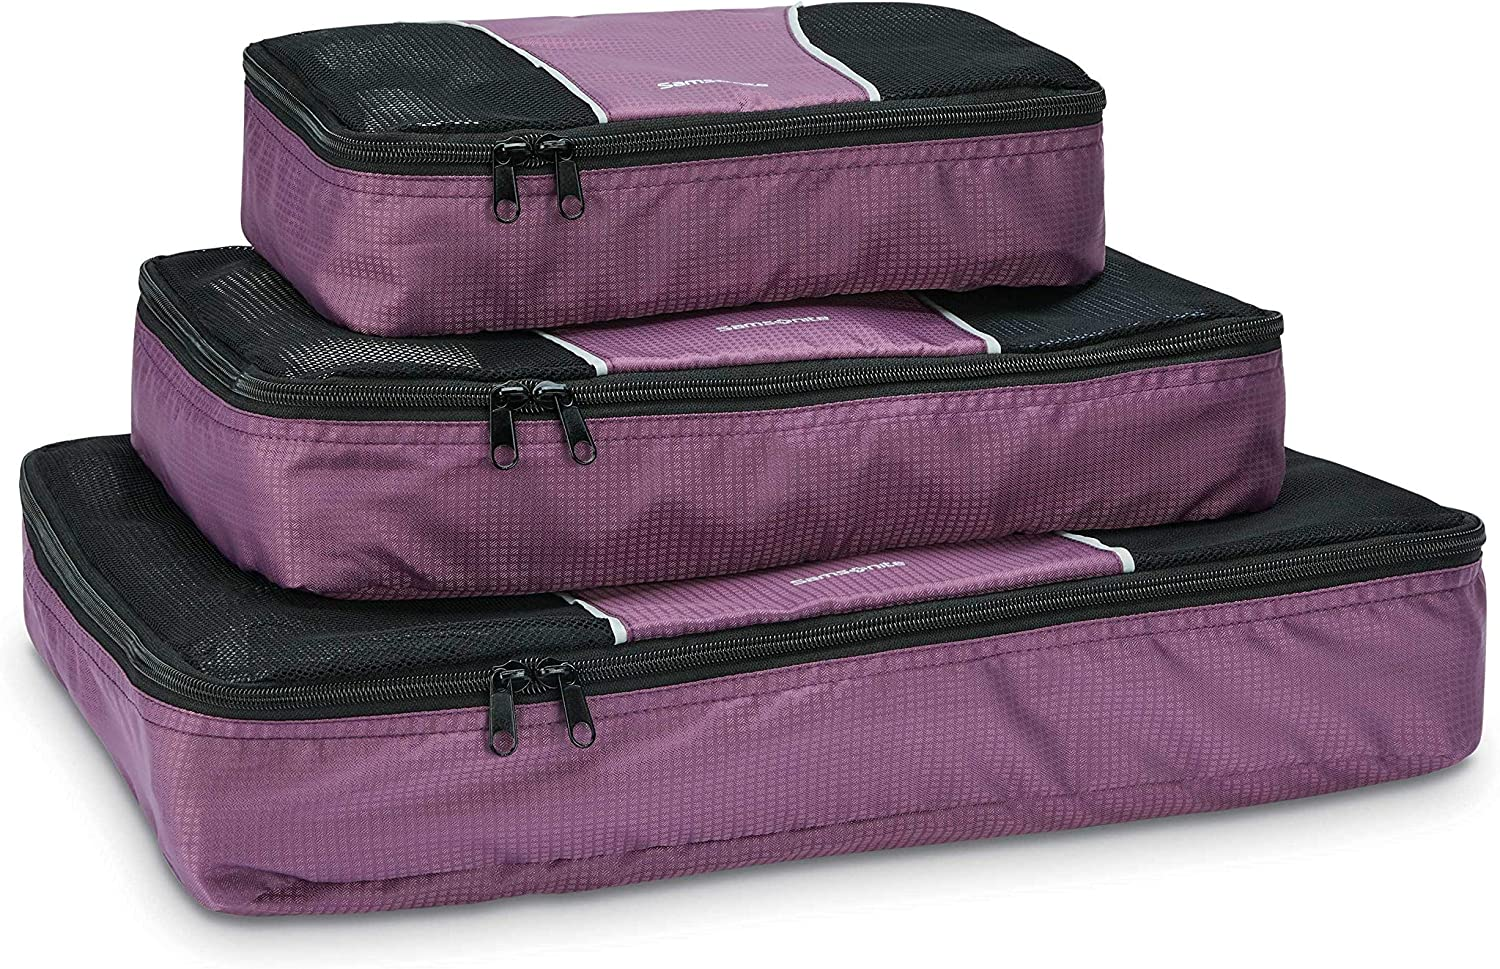 Charcoal Samsonite 3 Piece Packing Cube Set